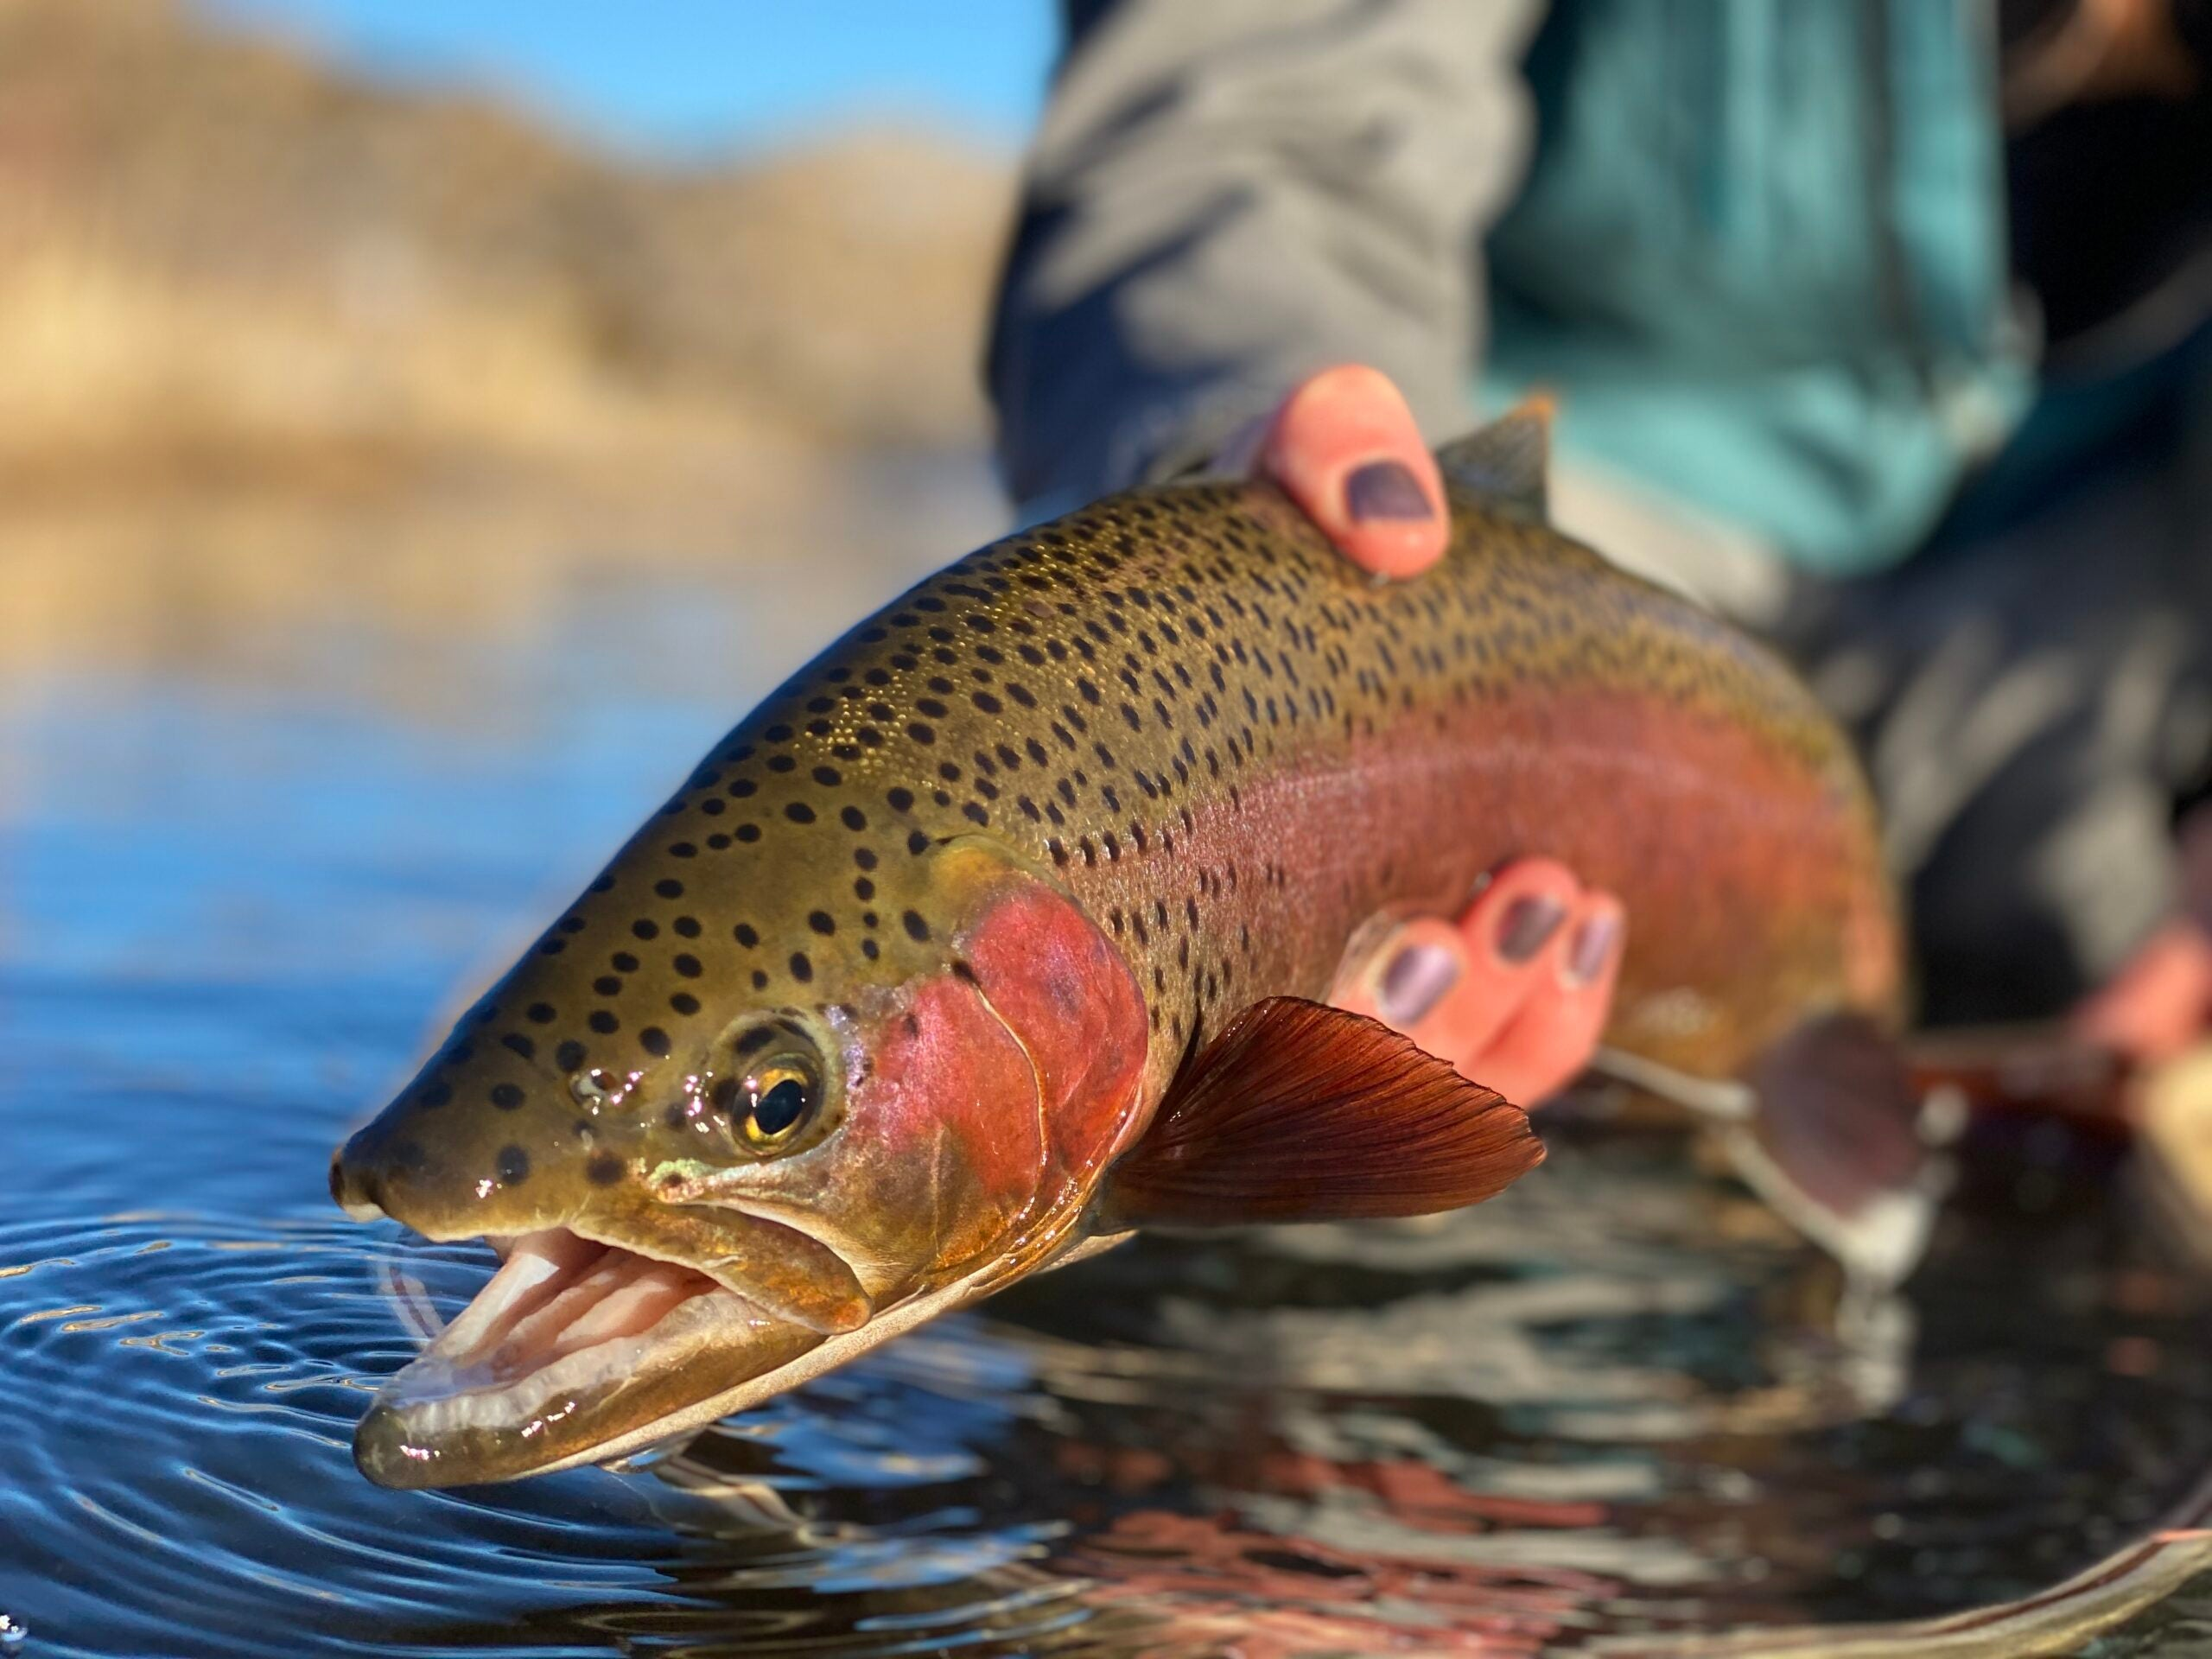 An angler holds a red rainbow trout caught during the spawn.